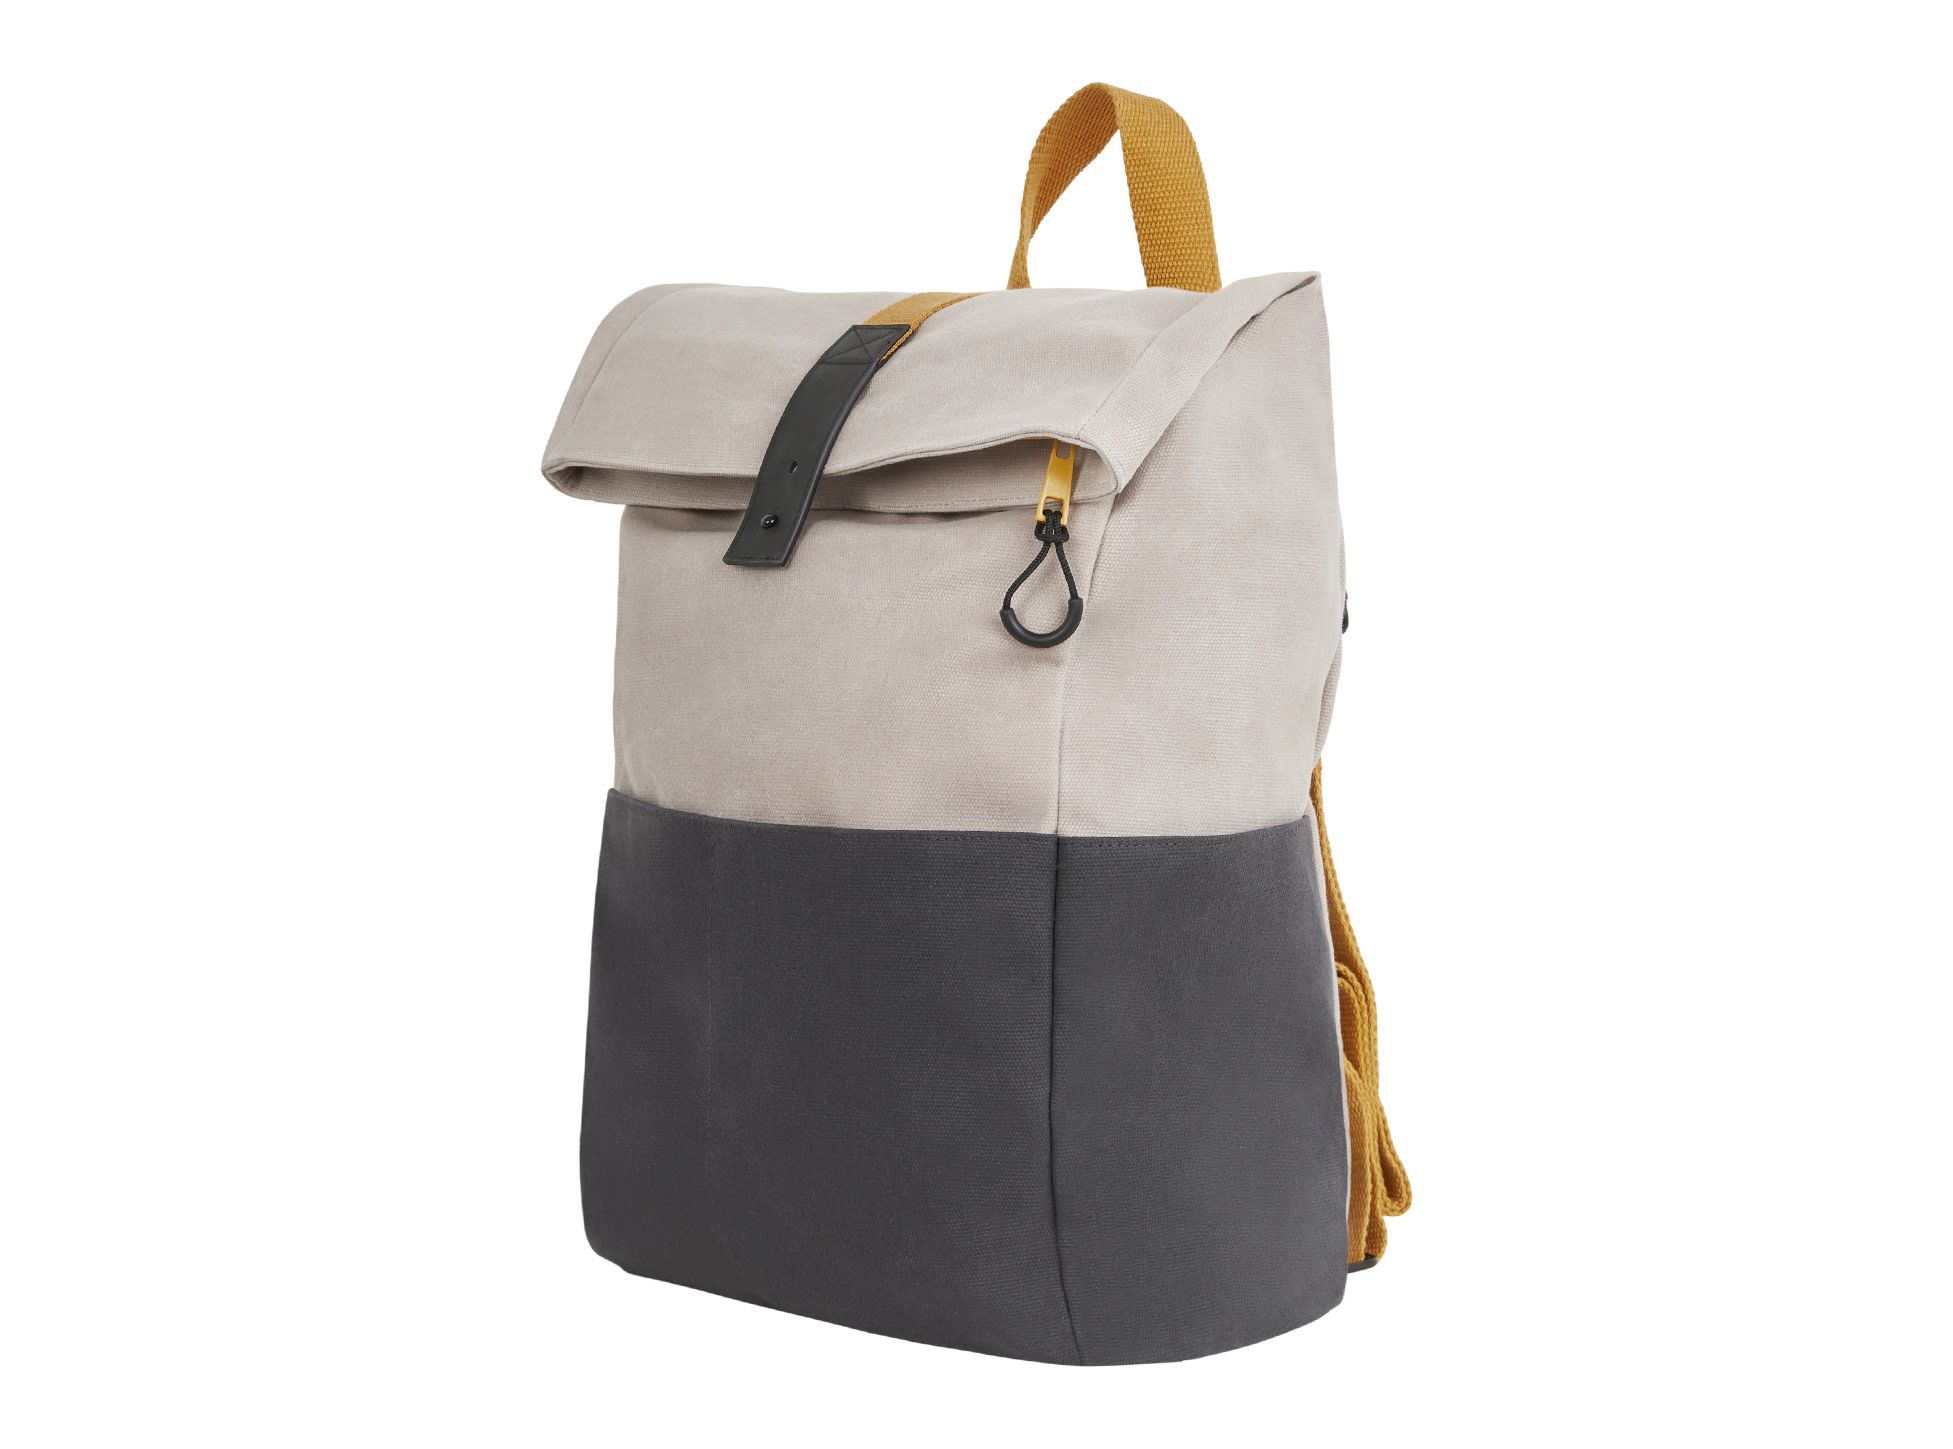 dbb9f69ff Lismore Waxed Canvas Backpack, Stone Diy Backpack, Canvas Backpack, Fashion  Backpack, Waxed